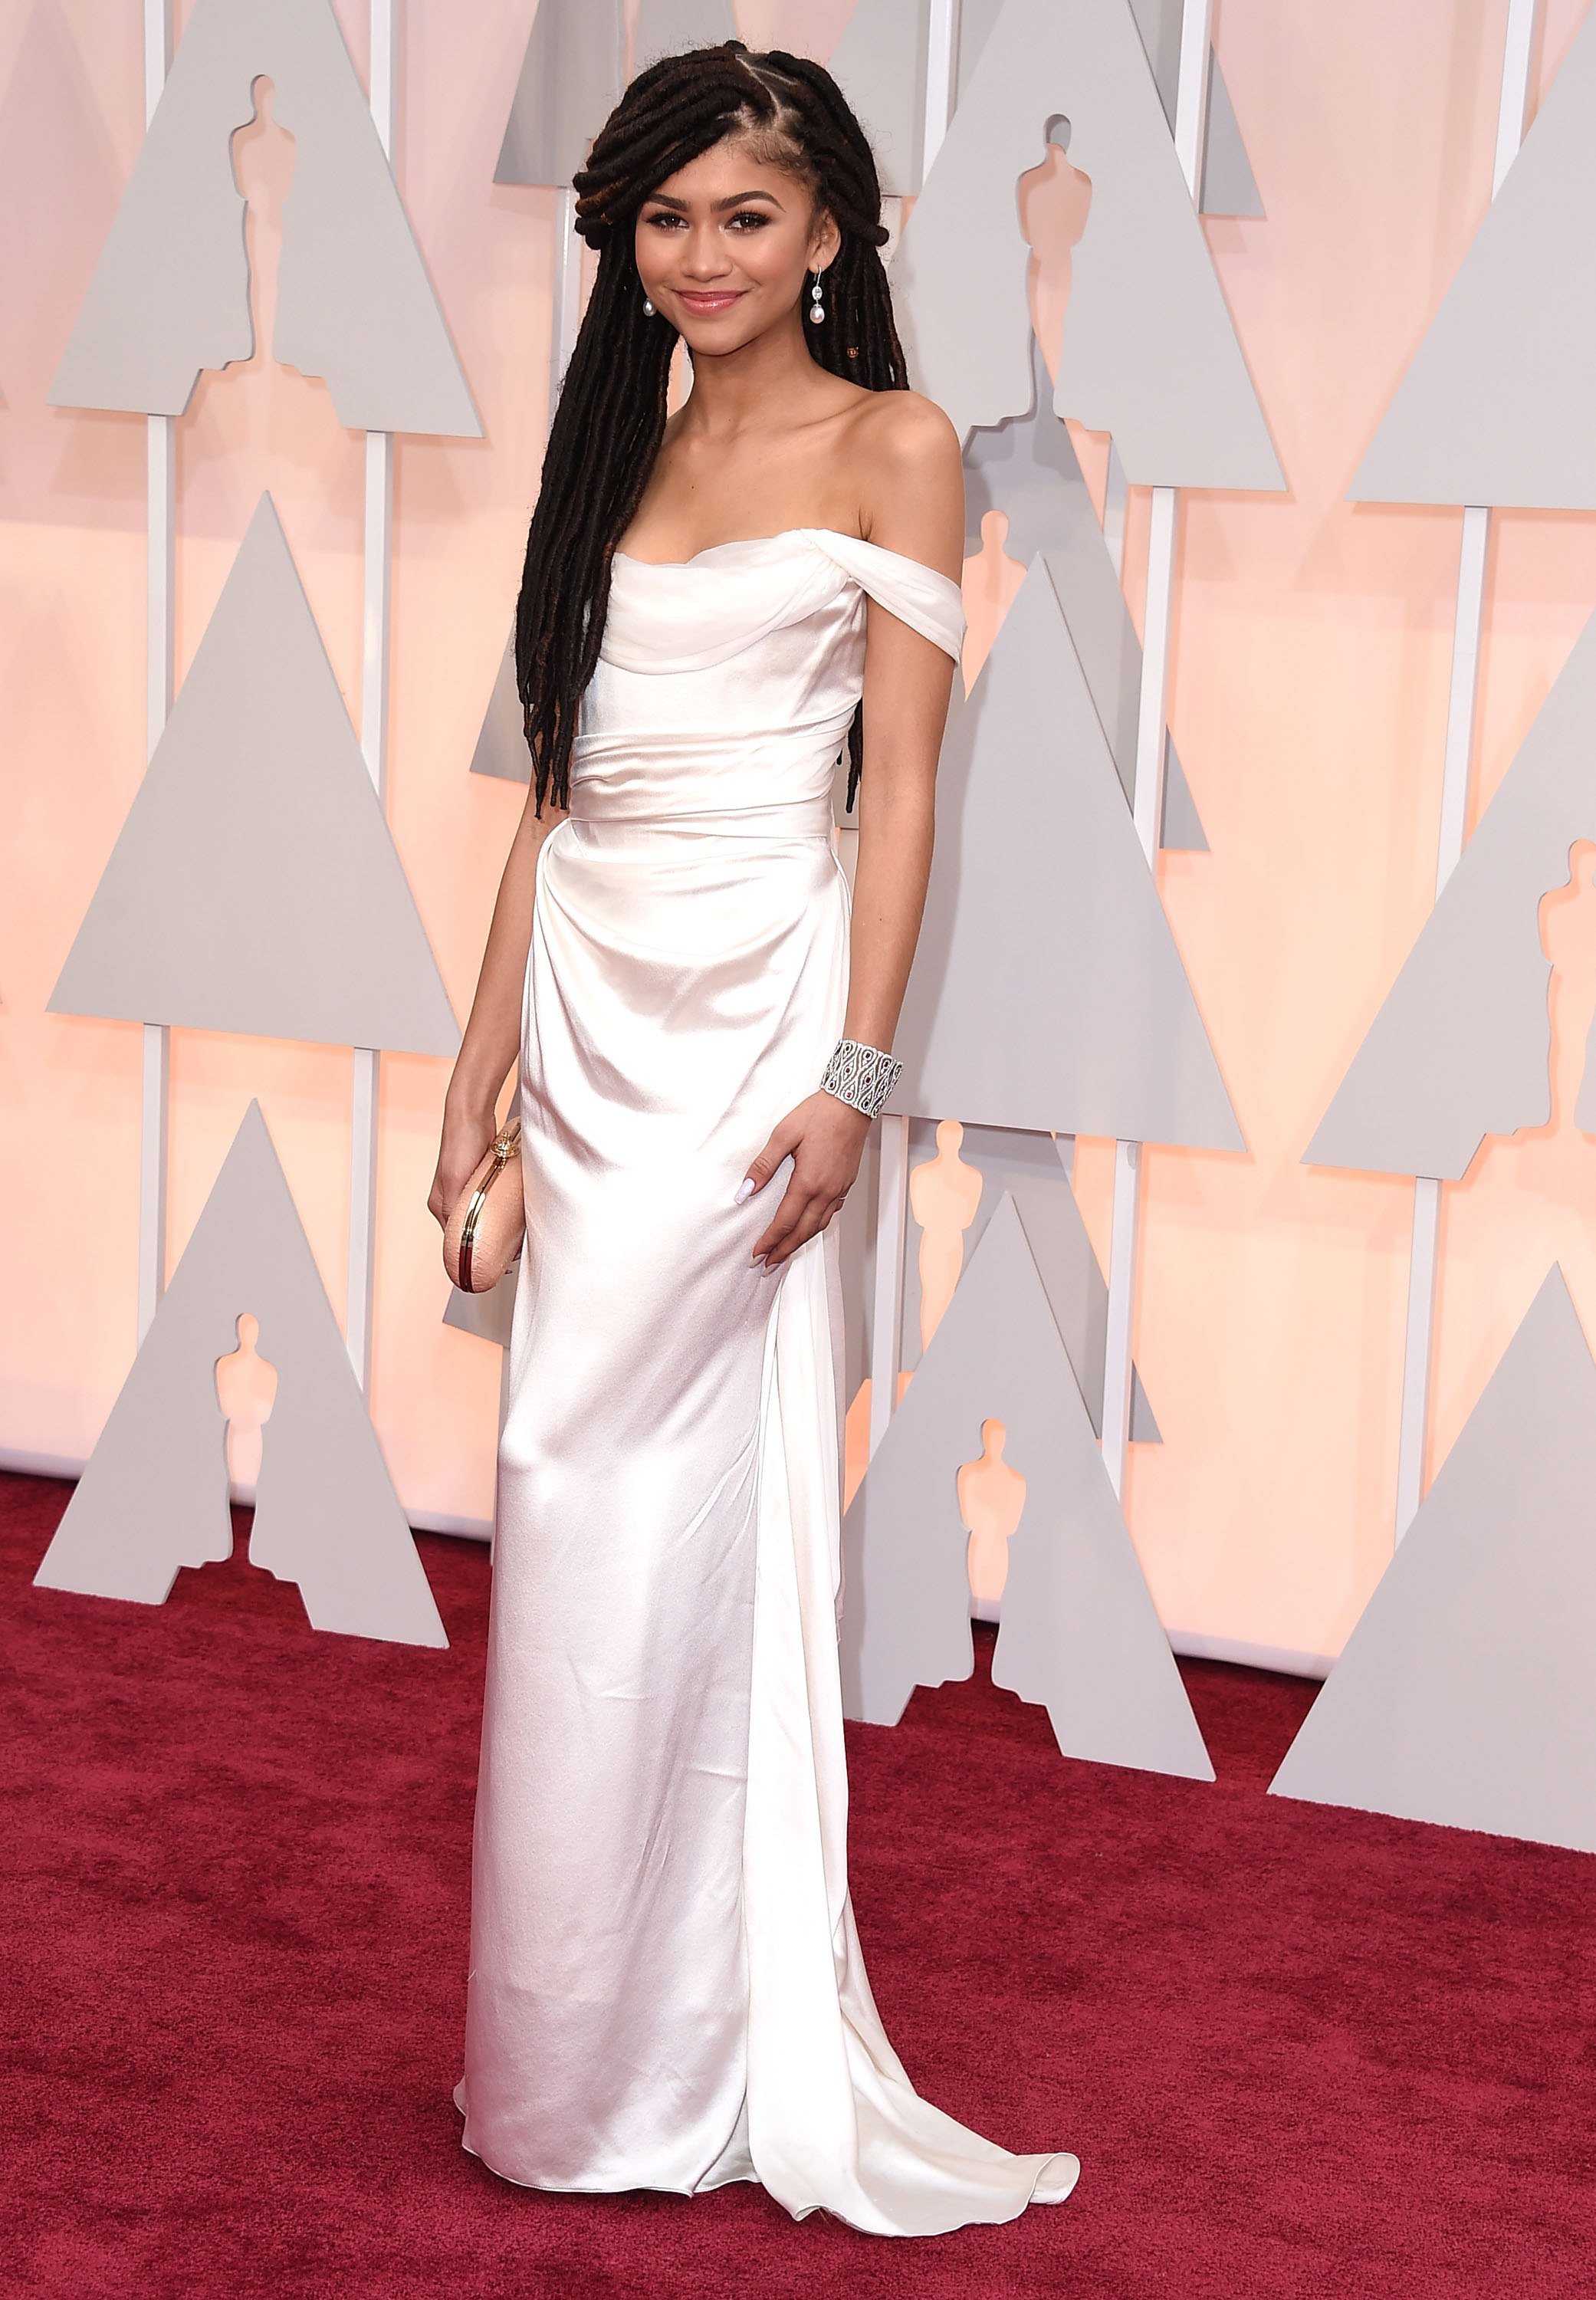 Zendaya on the red carpet at the Oscars.